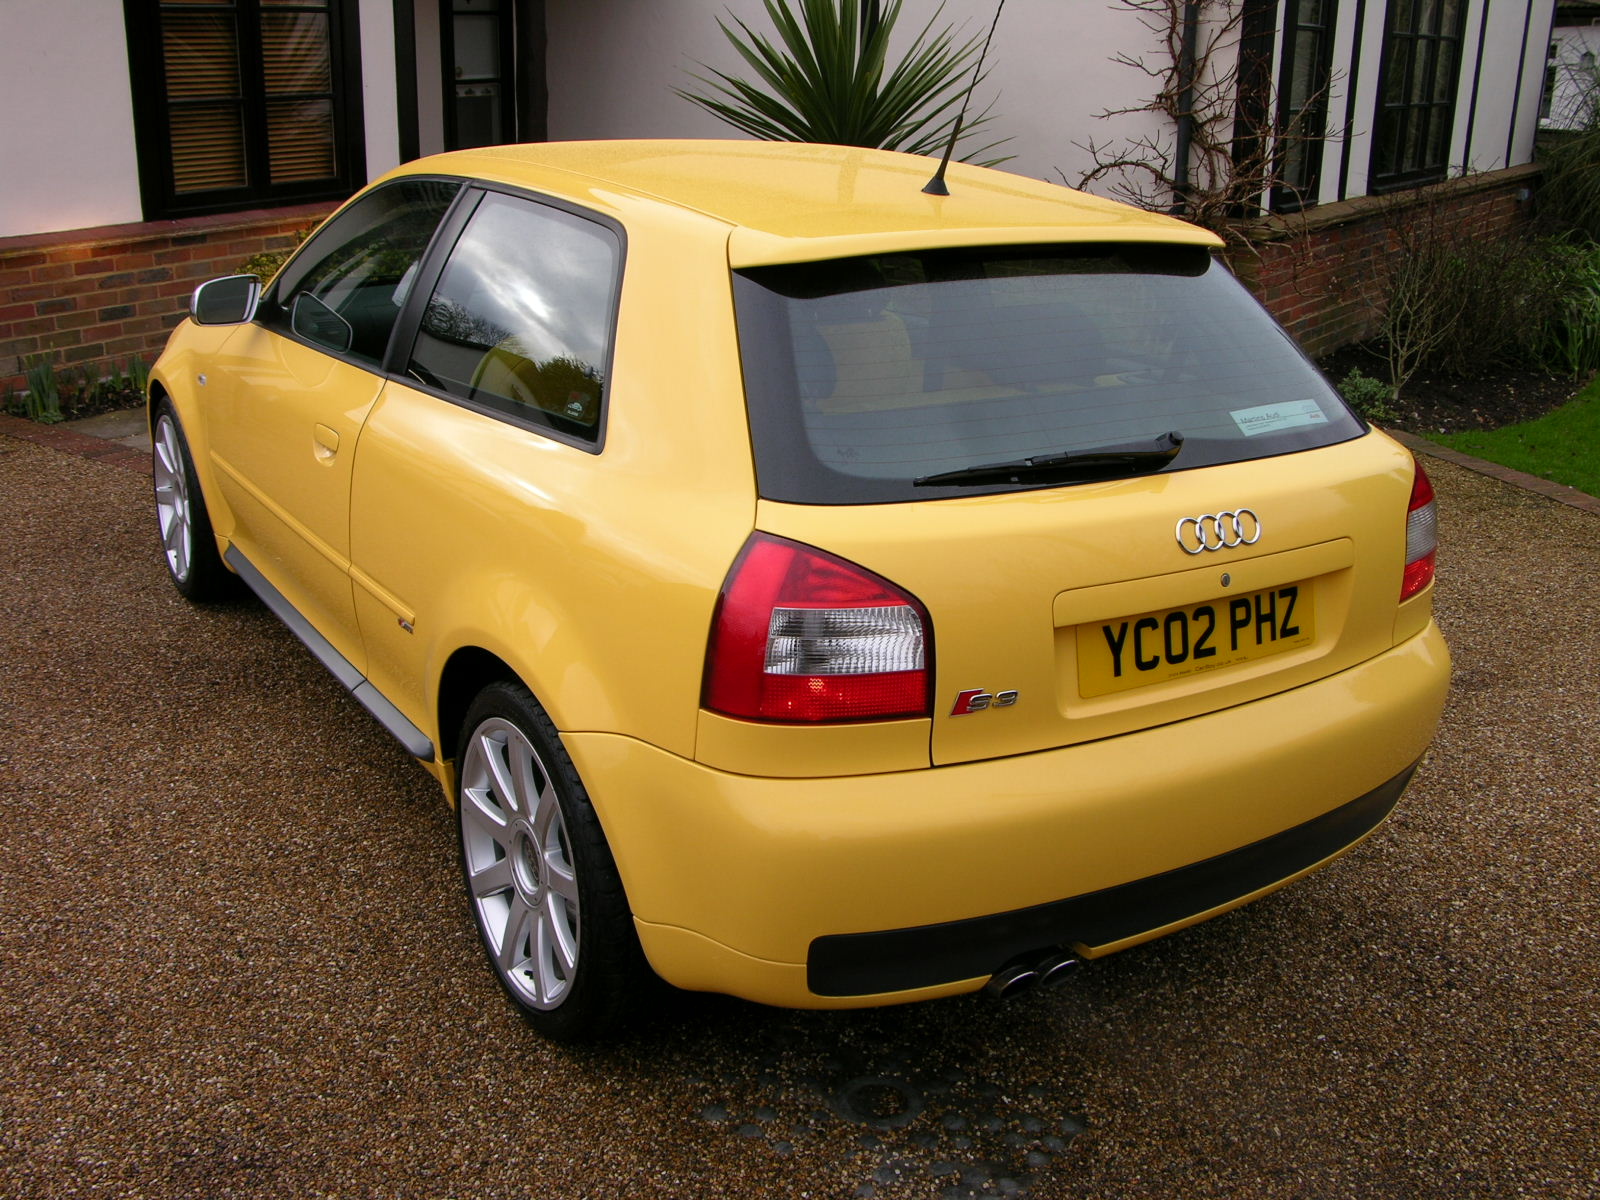 file audi s3 2002 imola yellow flickr the car spy 6 jpg wikimedia commons. Black Bedroom Furniture Sets. Home Design Ideas